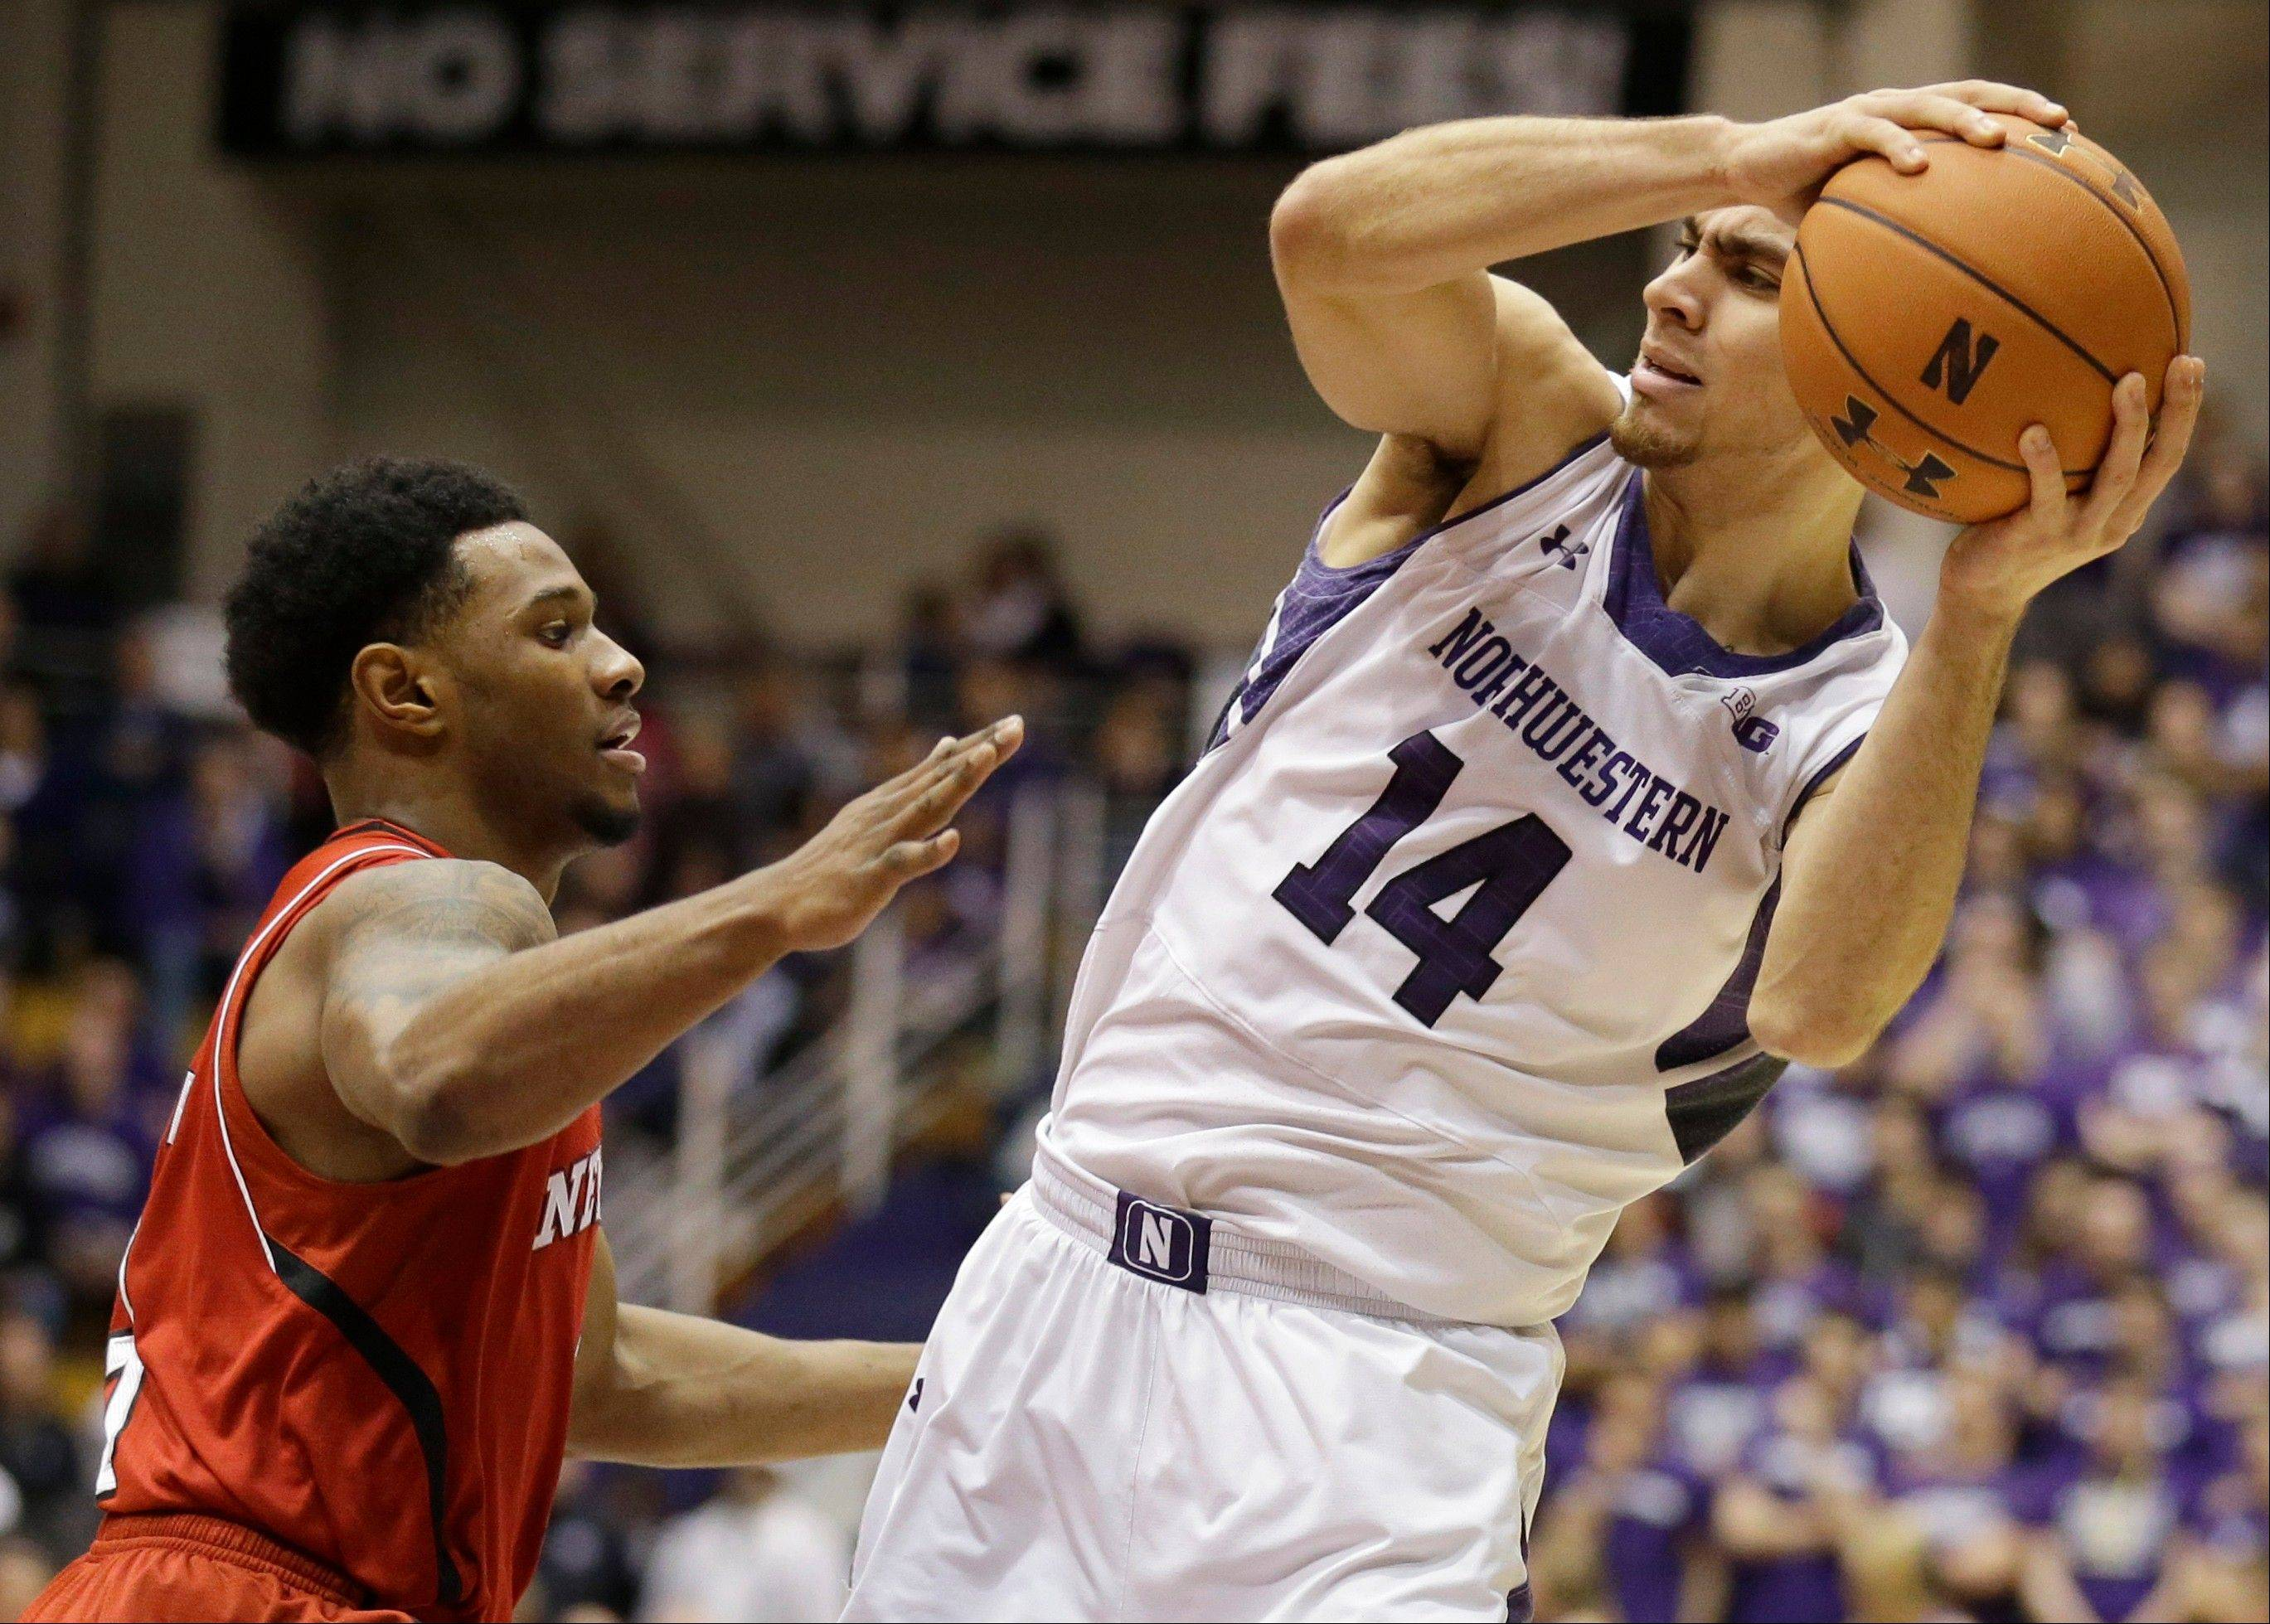 Northwestern guard Tre Demps, right, looks to a pass against Nebraska guard Benny Parker during the second half of an NCAA college basketball game in Evanston, Ill., on Saturday, Feb.8, 2014. Nebraska won 53-49.